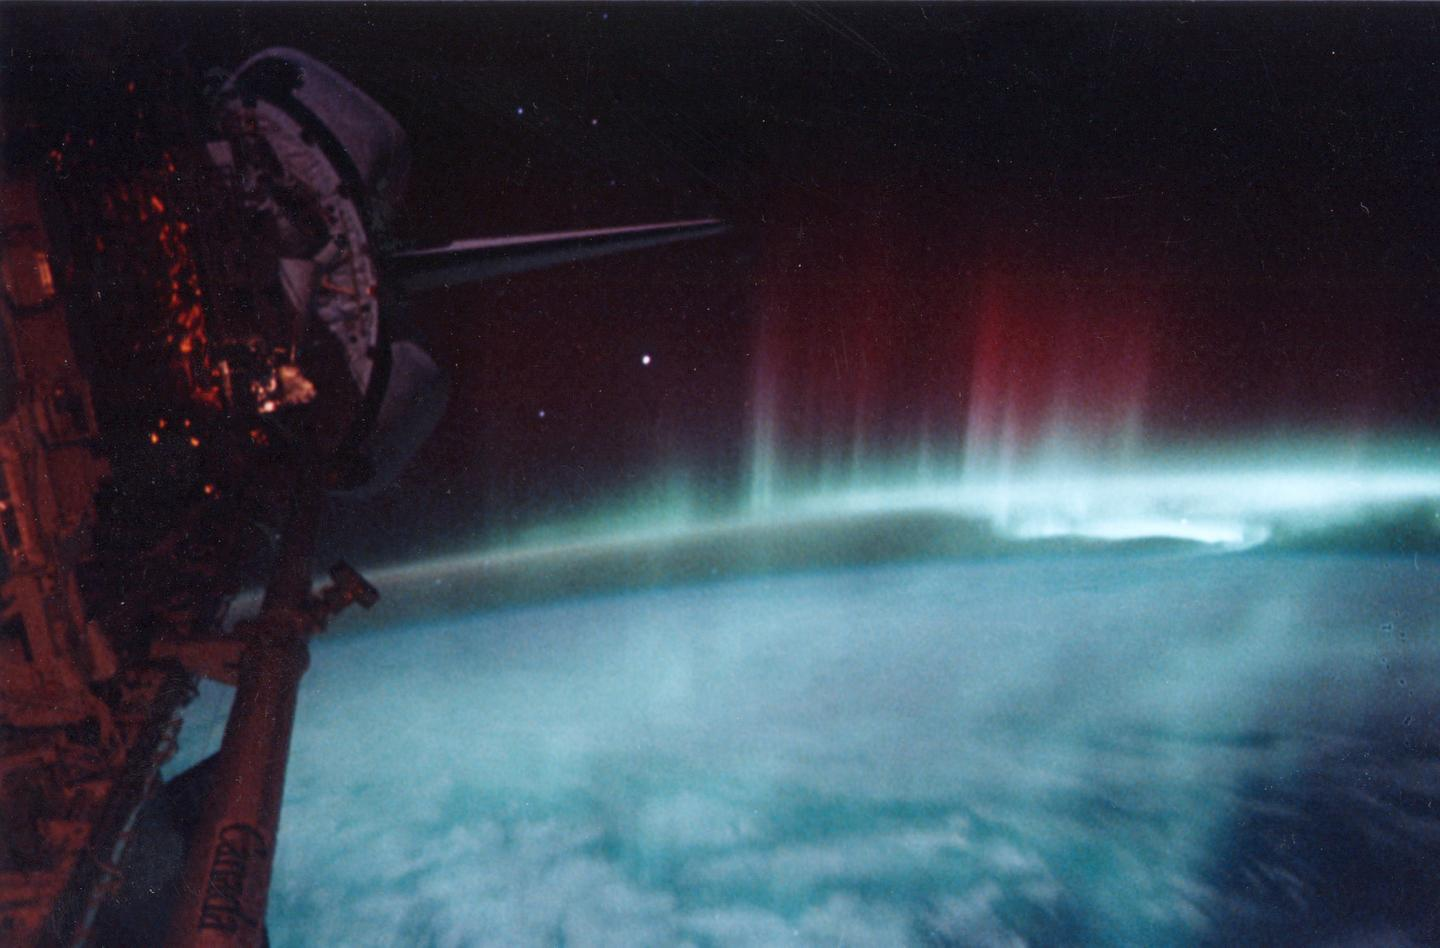 Aurora Australis as seen from the International Space Station (Image: NASA)